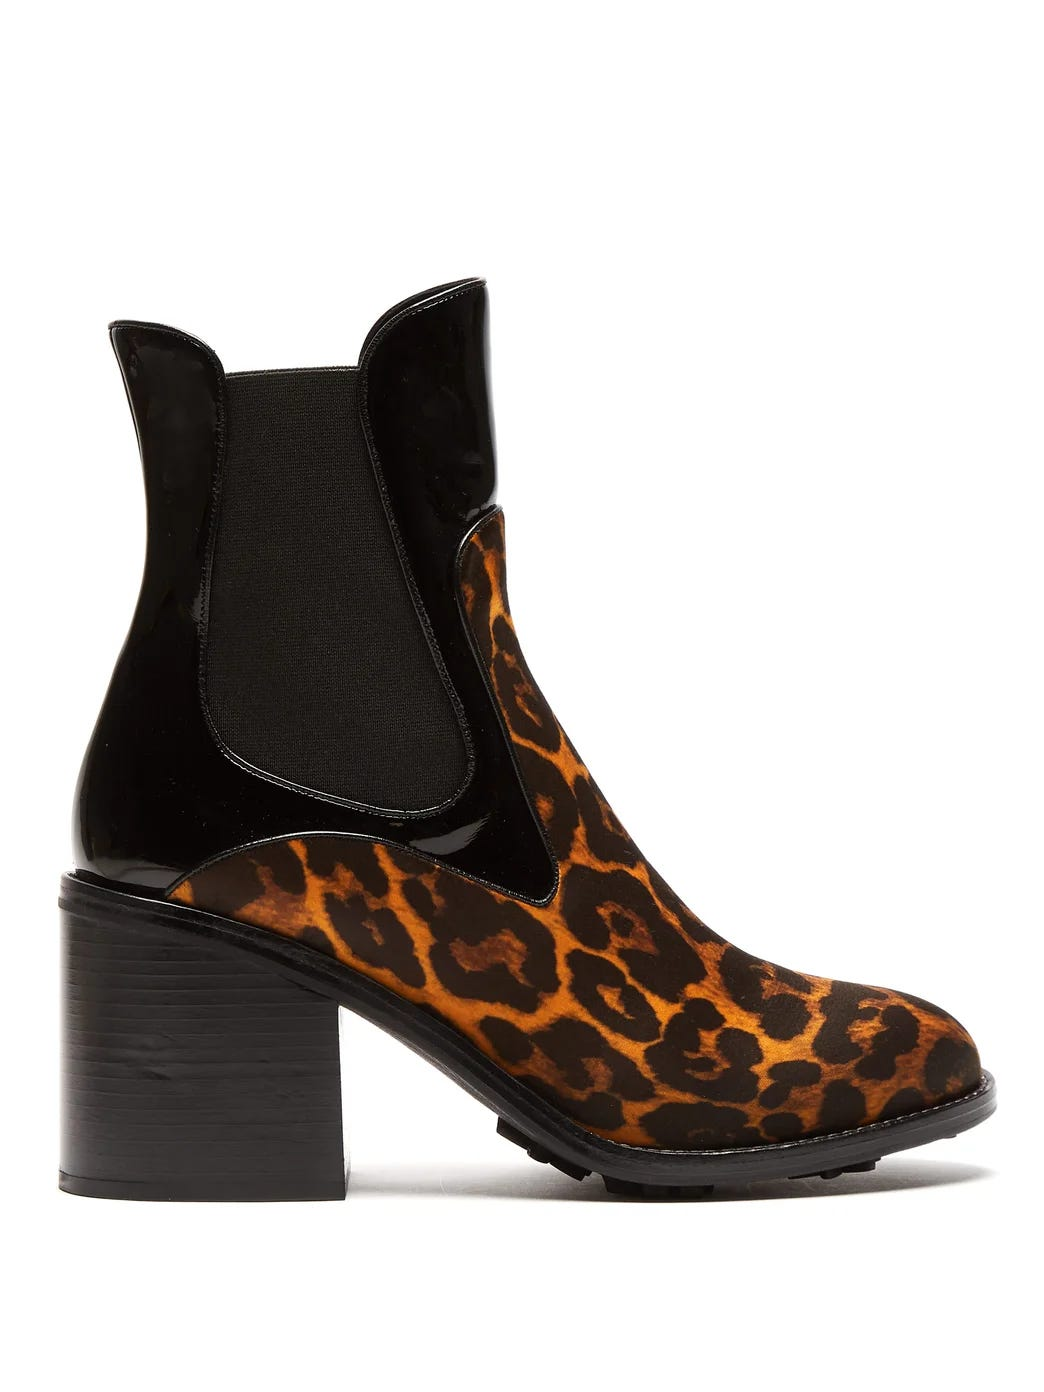 85 Best Lovely Shoes images in 2019 | Shoe boots, Ankle